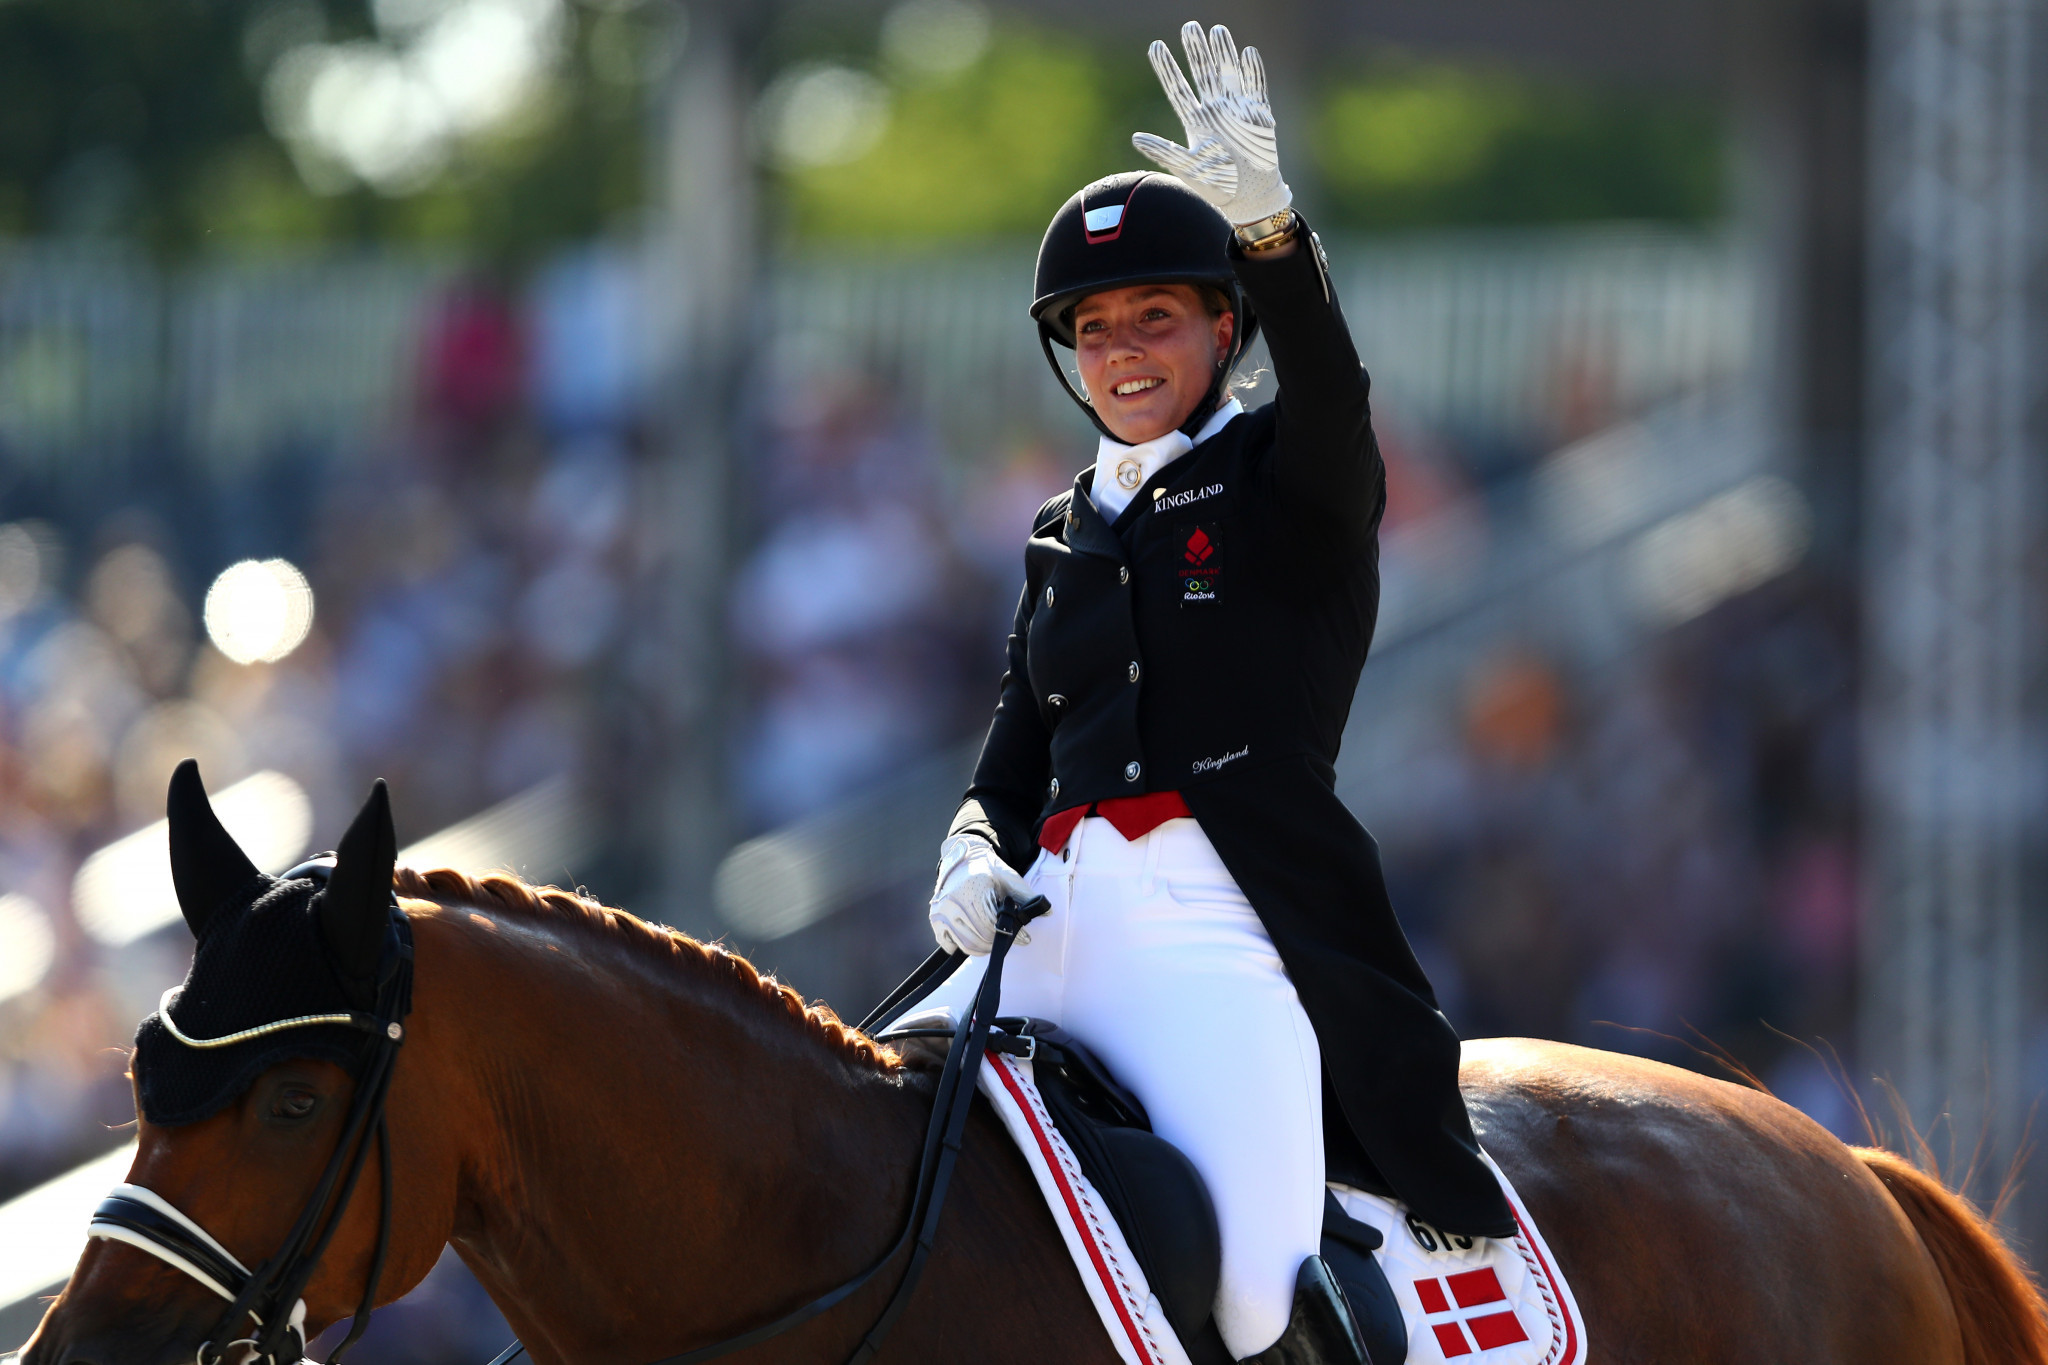 Danish delight as Dufour wins opening leg of Dressage World Cup on home turf